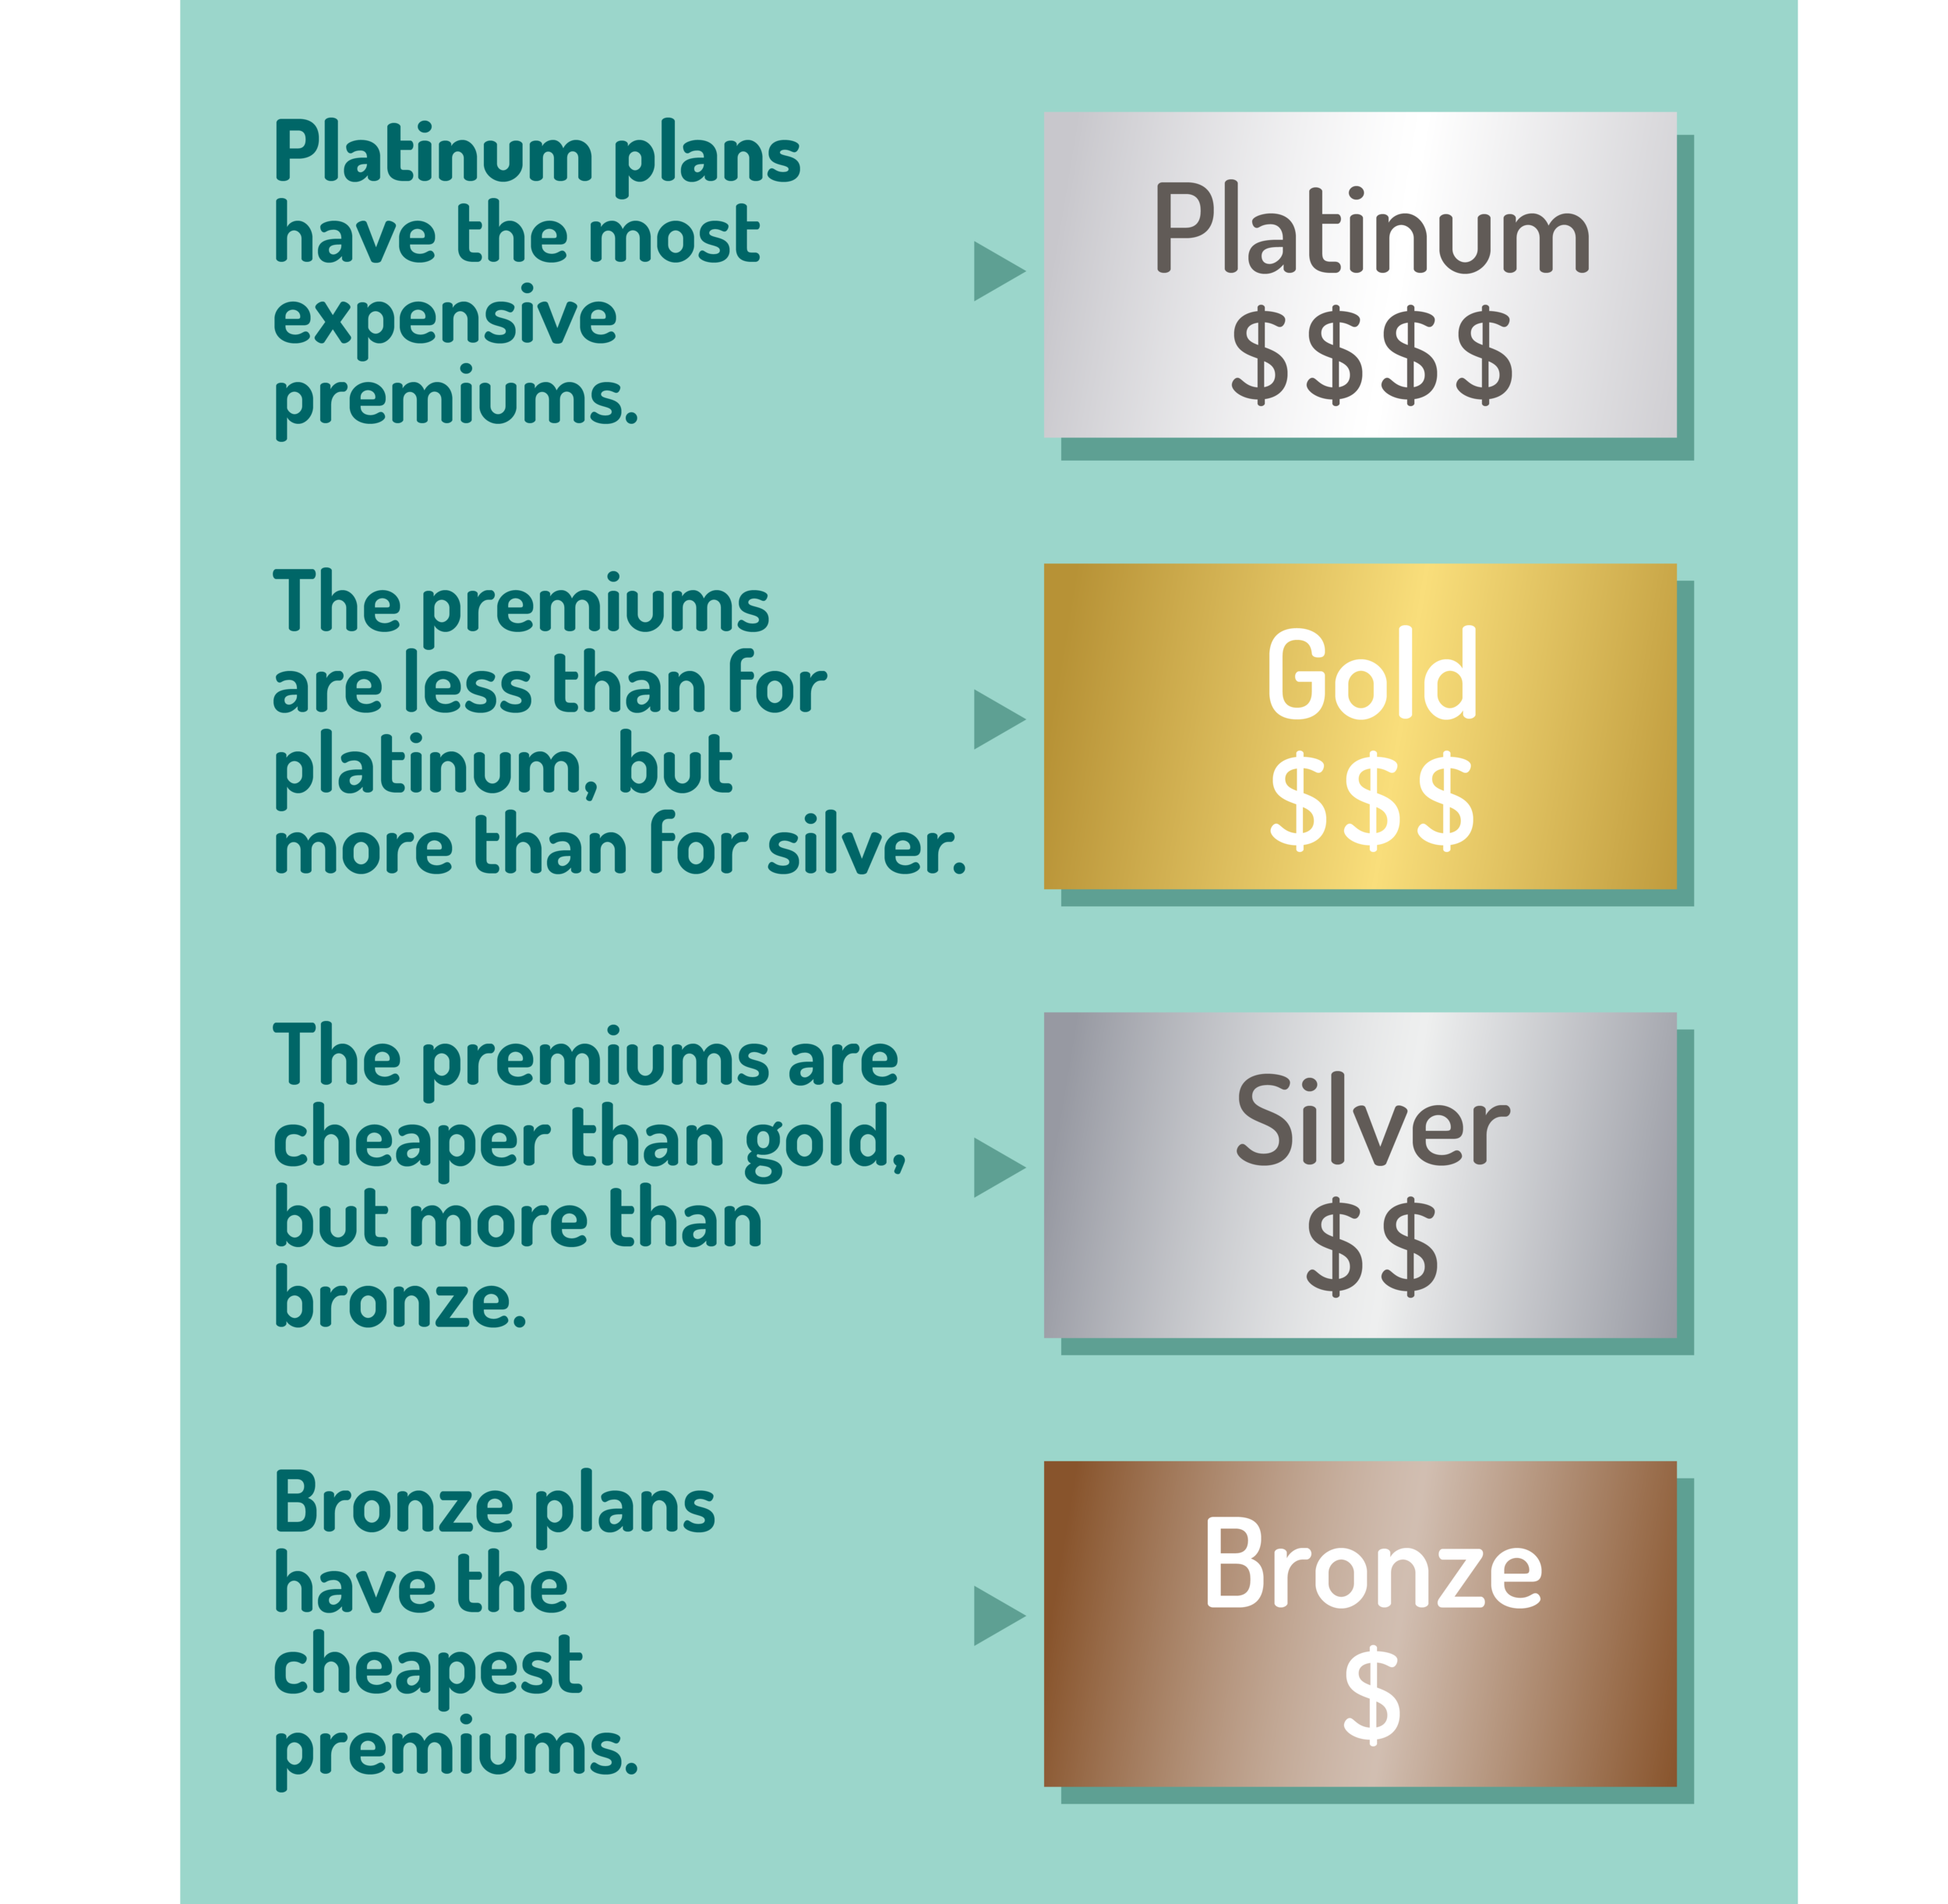 graphic showing 4 levels of health plans: platinum plans have the most expensive premiums; gold premiums are less than platinum but more than silver; silver premiums are cheaper than gold but more than bronze; bronze plans have the cheapest premiums